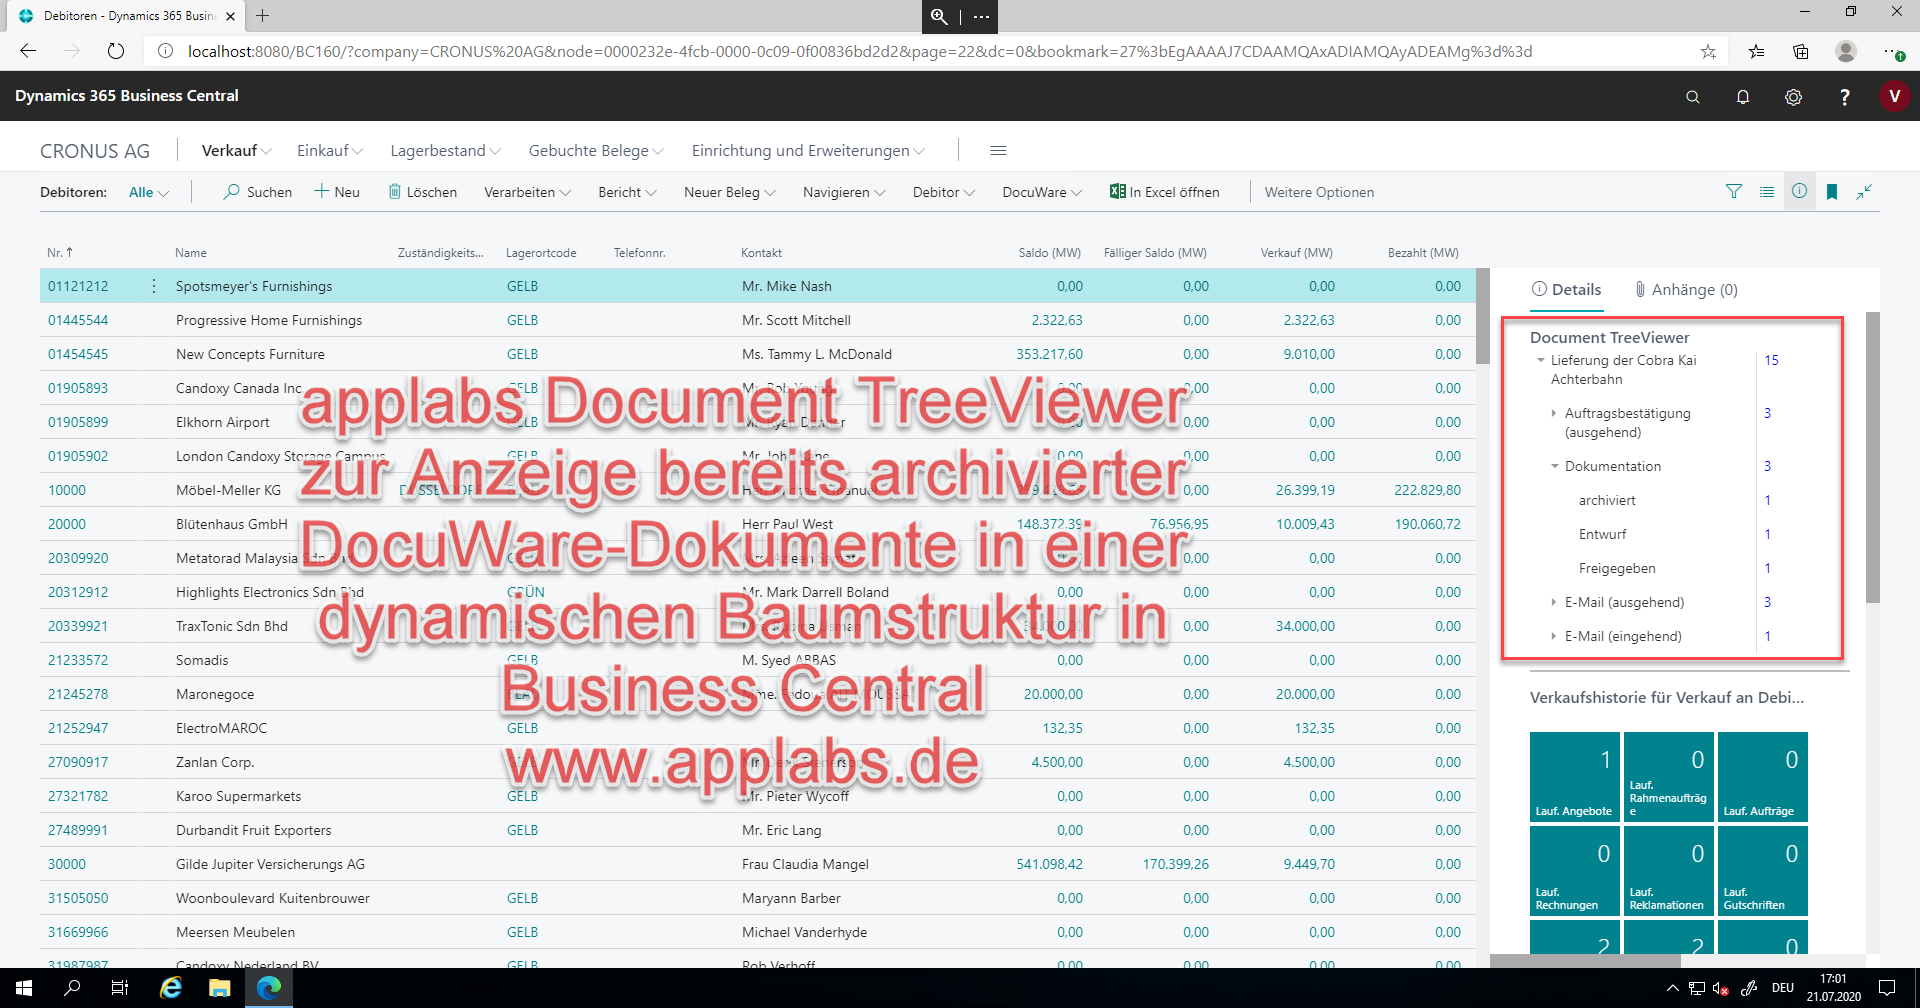 applabs Document TreeViewer